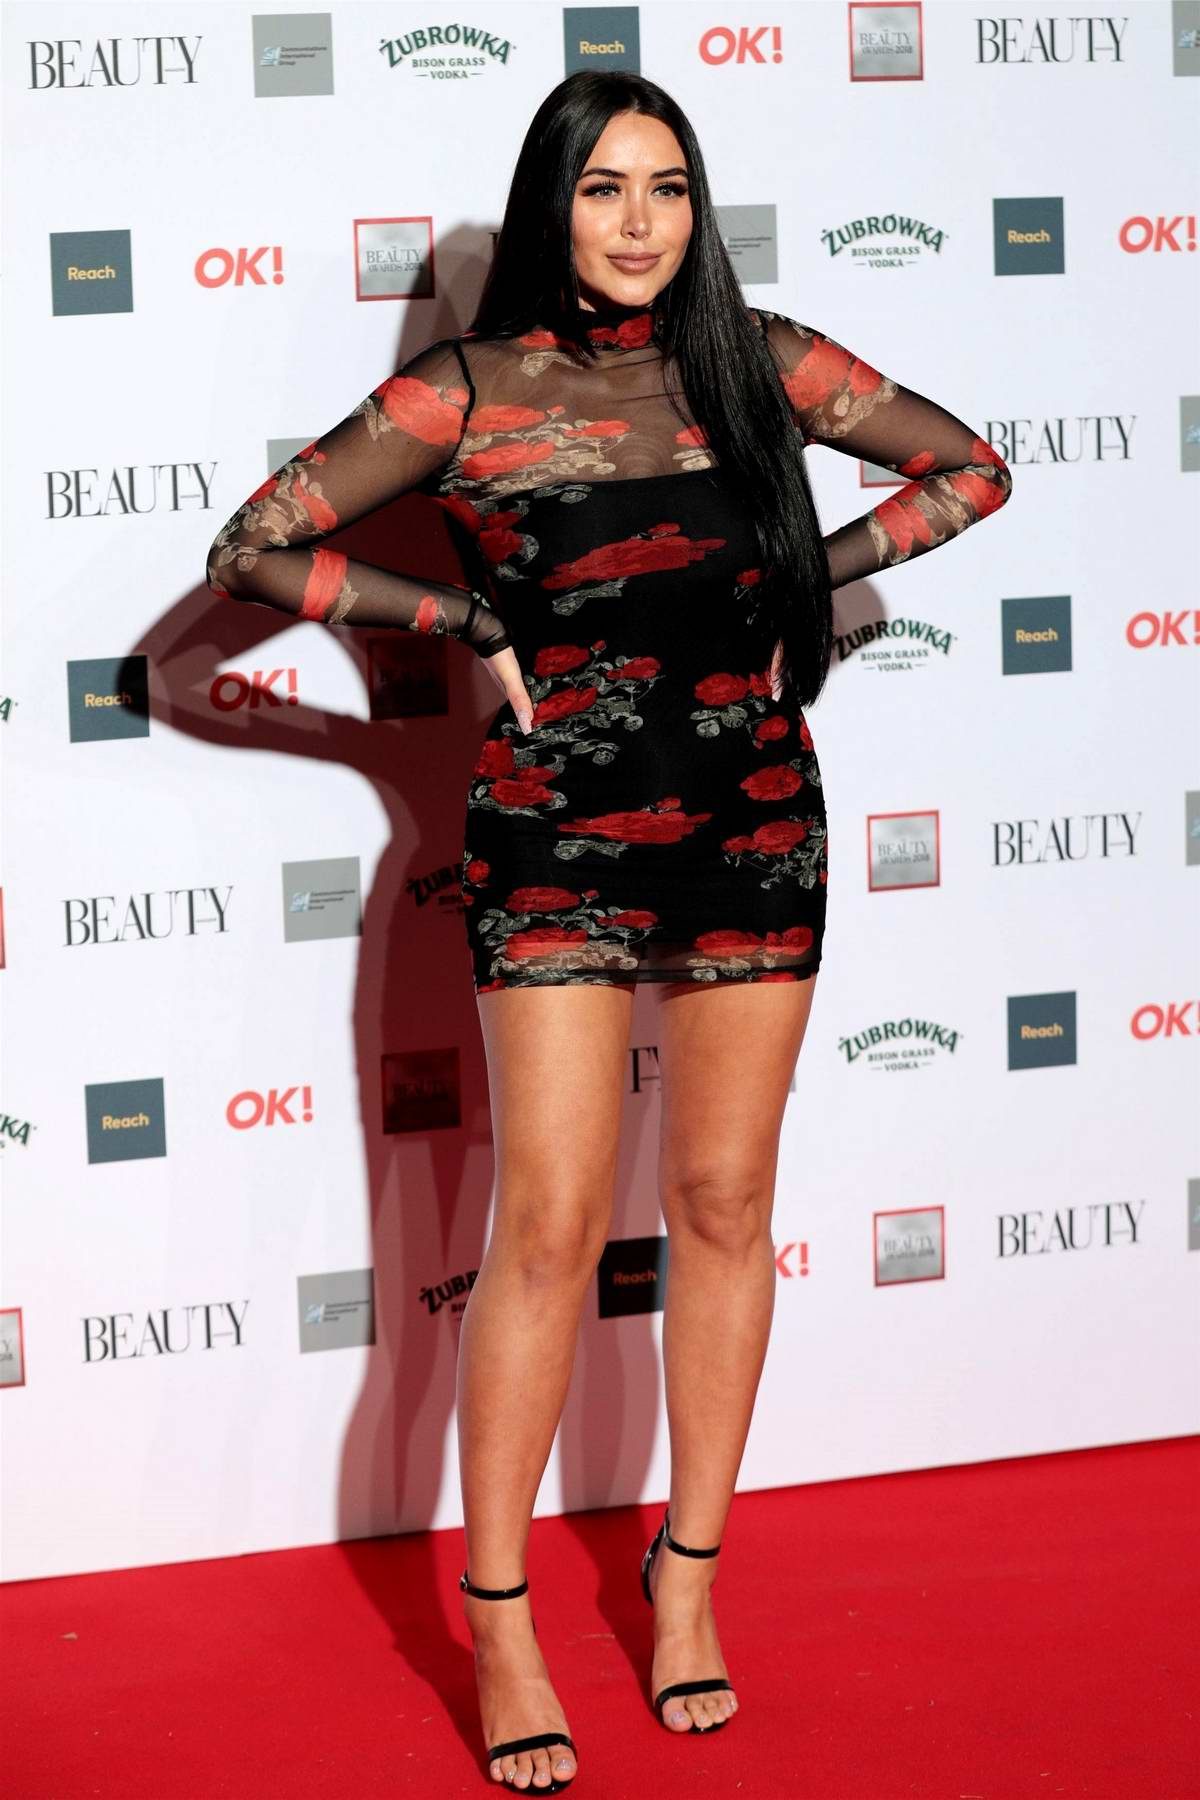 Marnie Simpson attends the OK! Beauty Awards at Park Plaza Westminster Bridge in London, UK